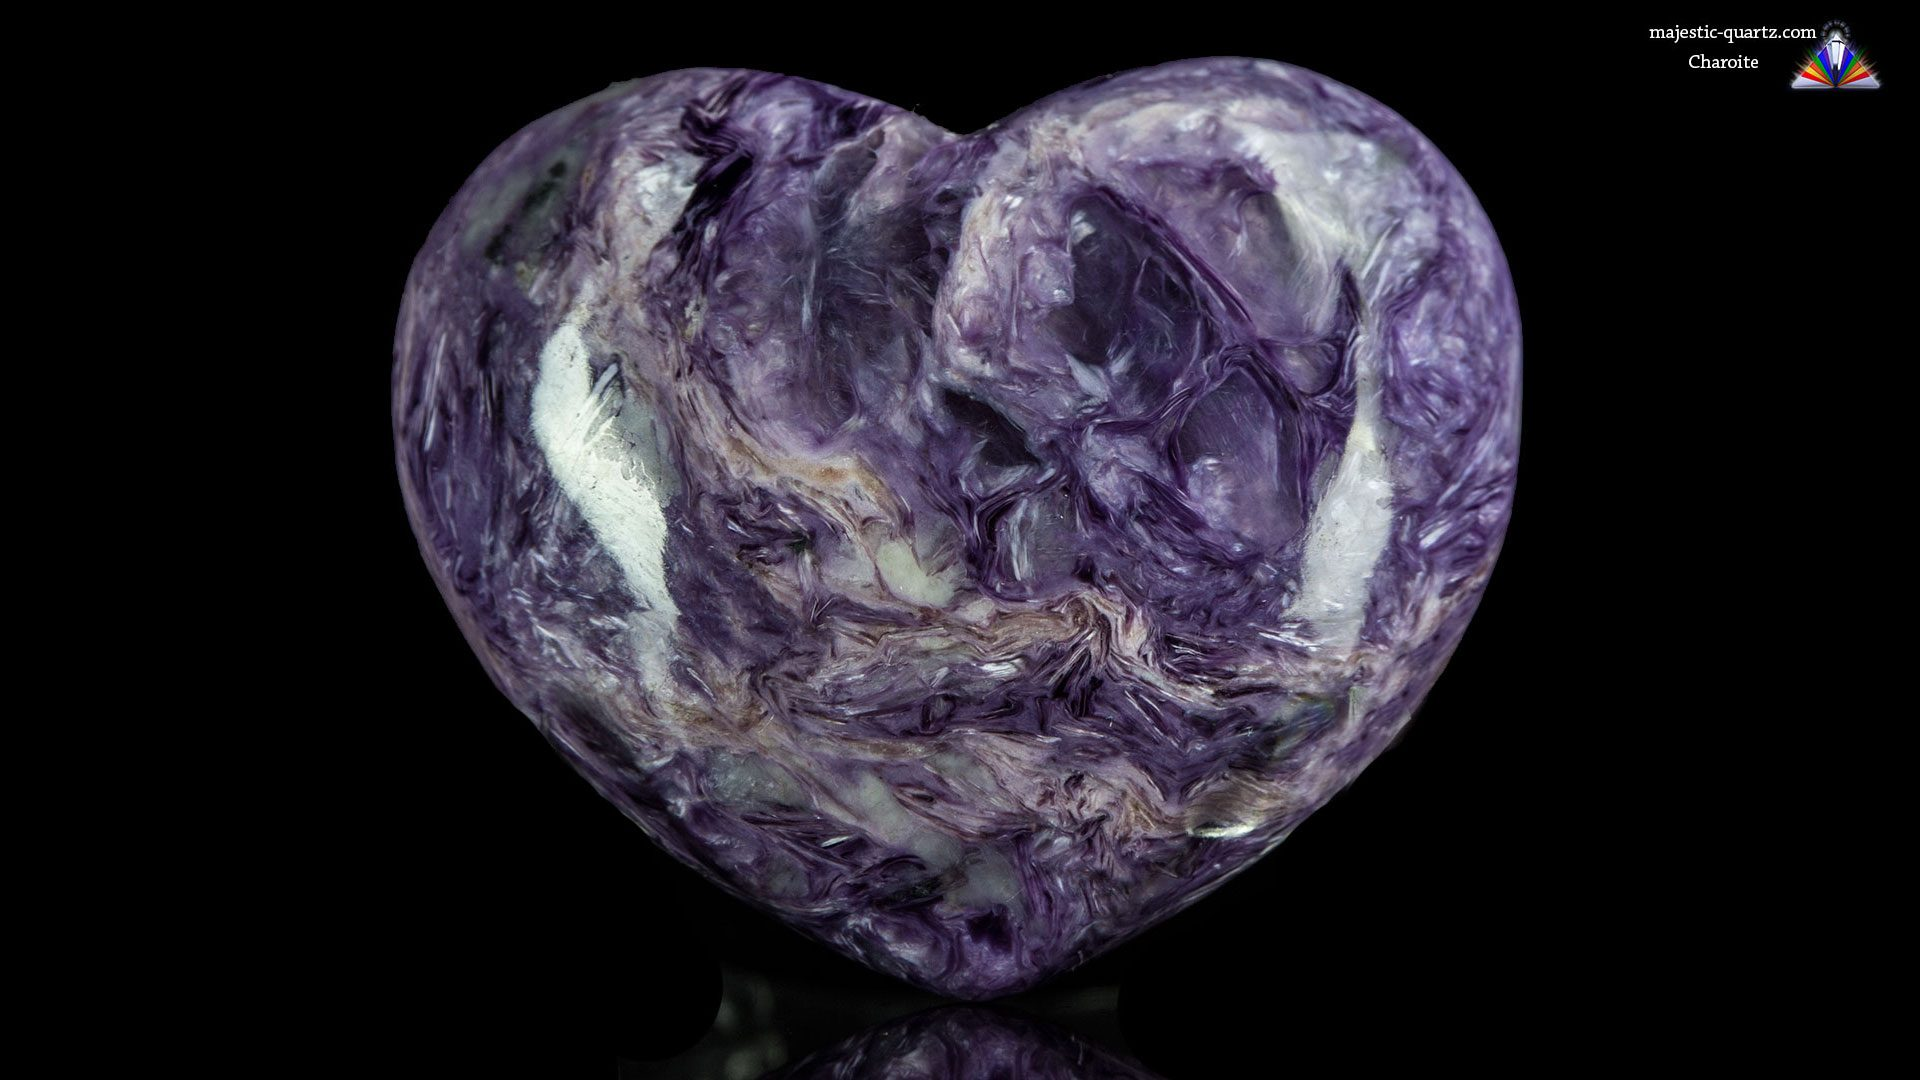 Charoite Polished Heart - Photograph by Anthony Bradford